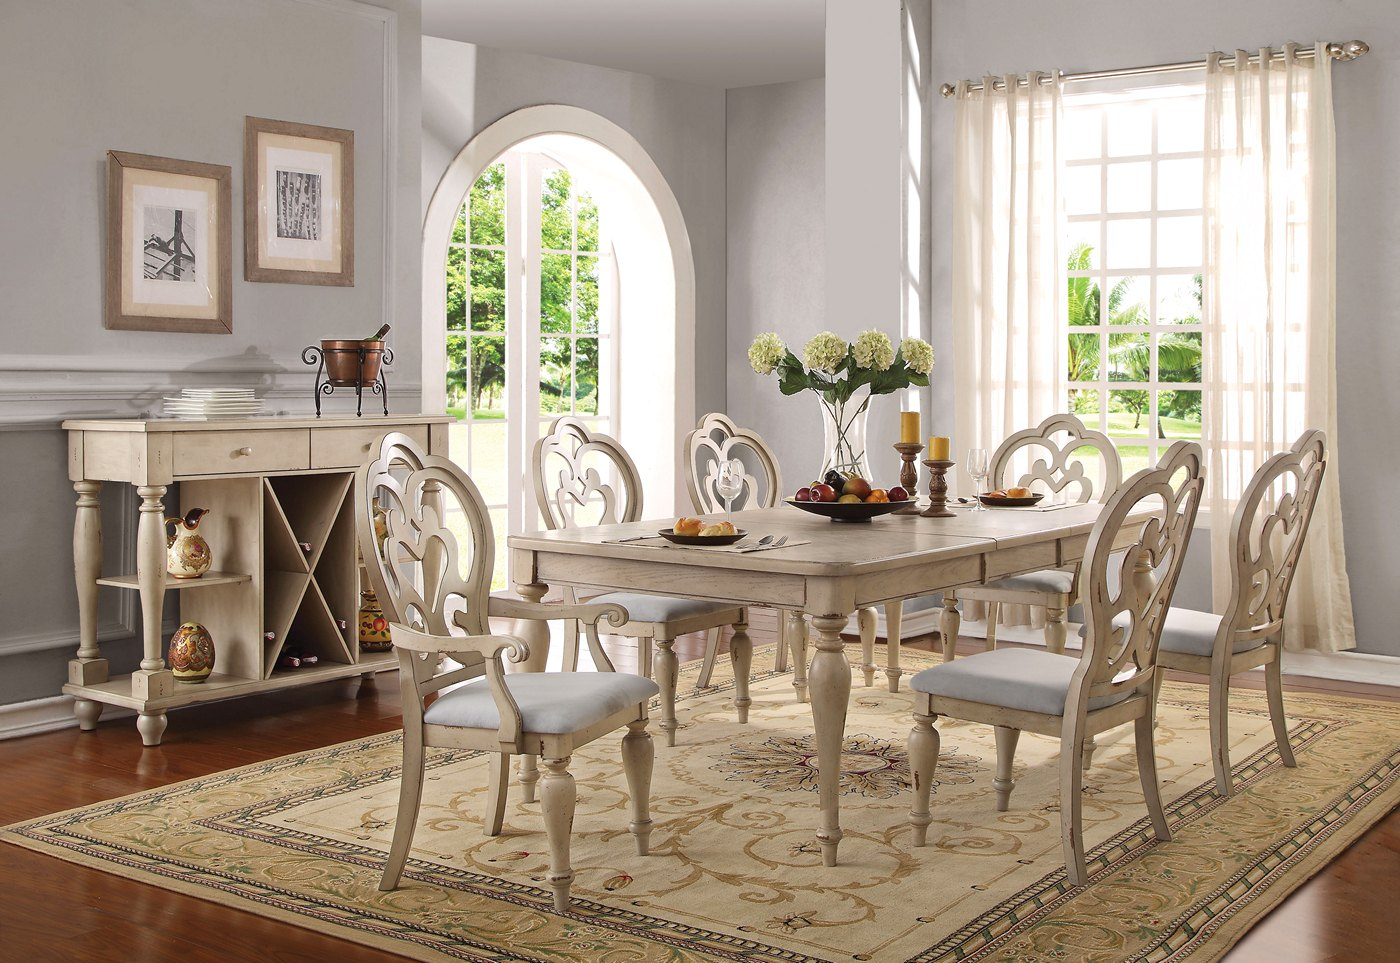 Absolon French Country Dining Room Set, French Country Dining Room Table